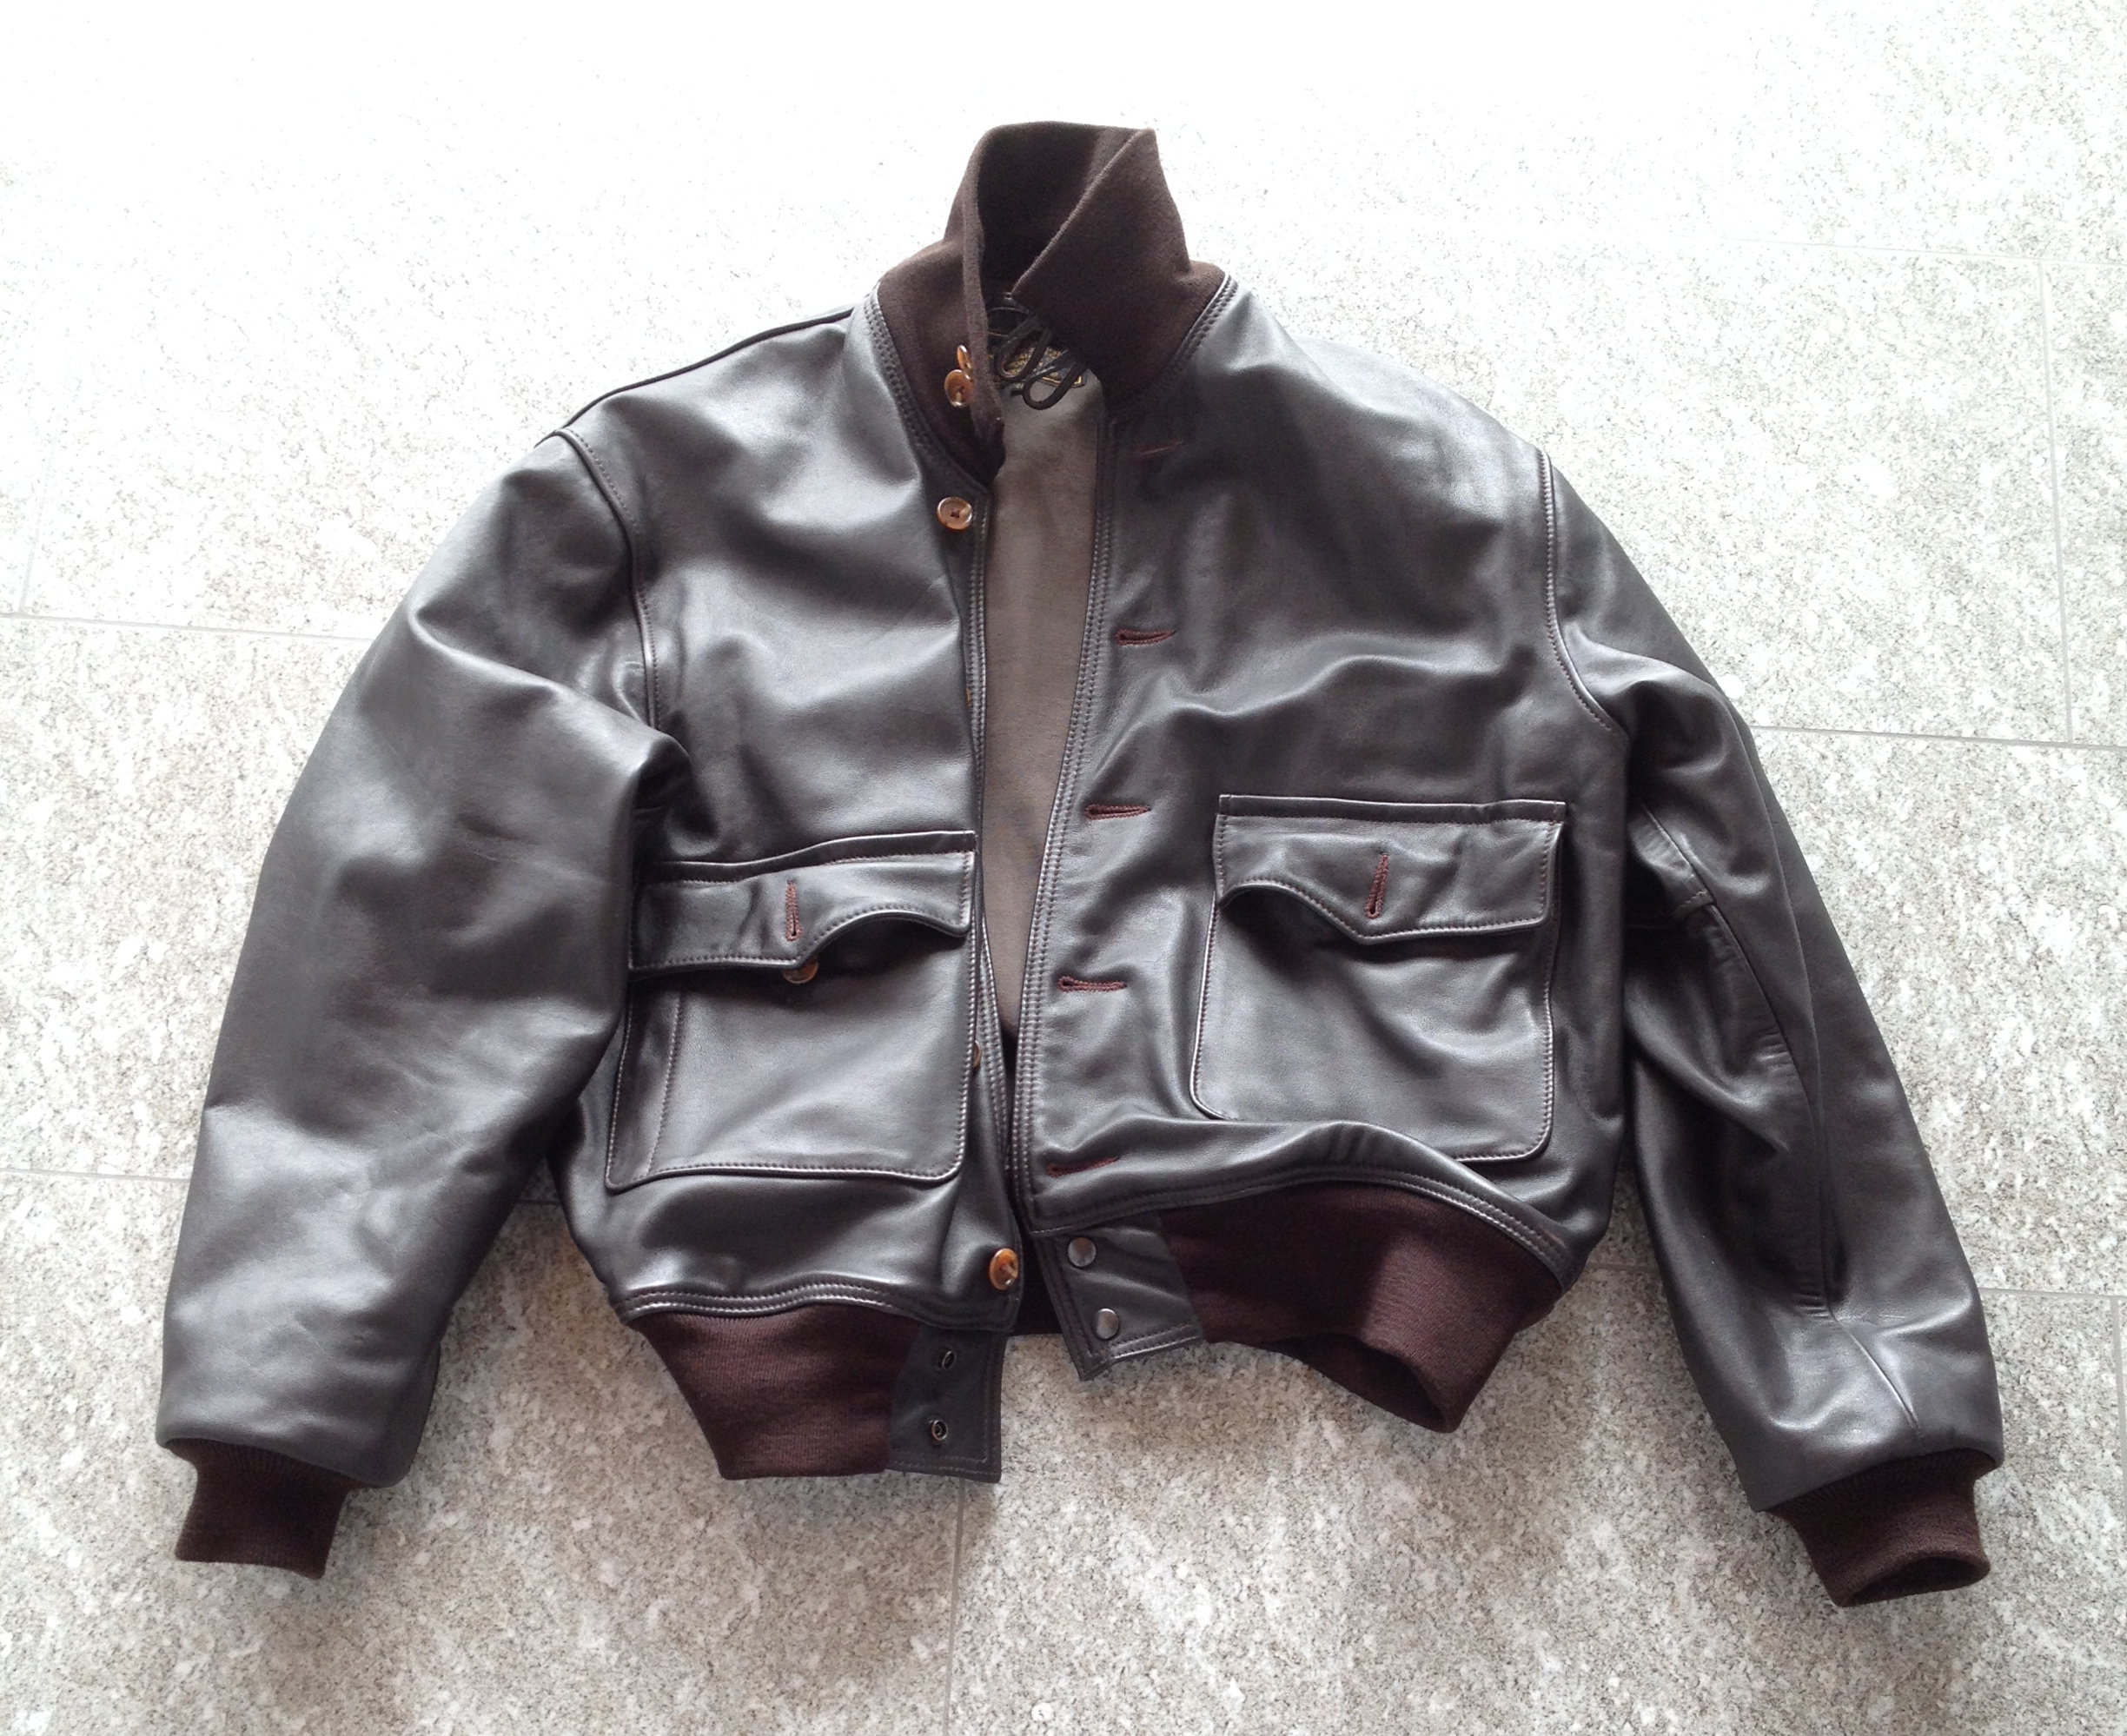 b36a0c5fbb3 Aero Leather Air Corps US Army Type A-1 Flying Jacket from Aero ...